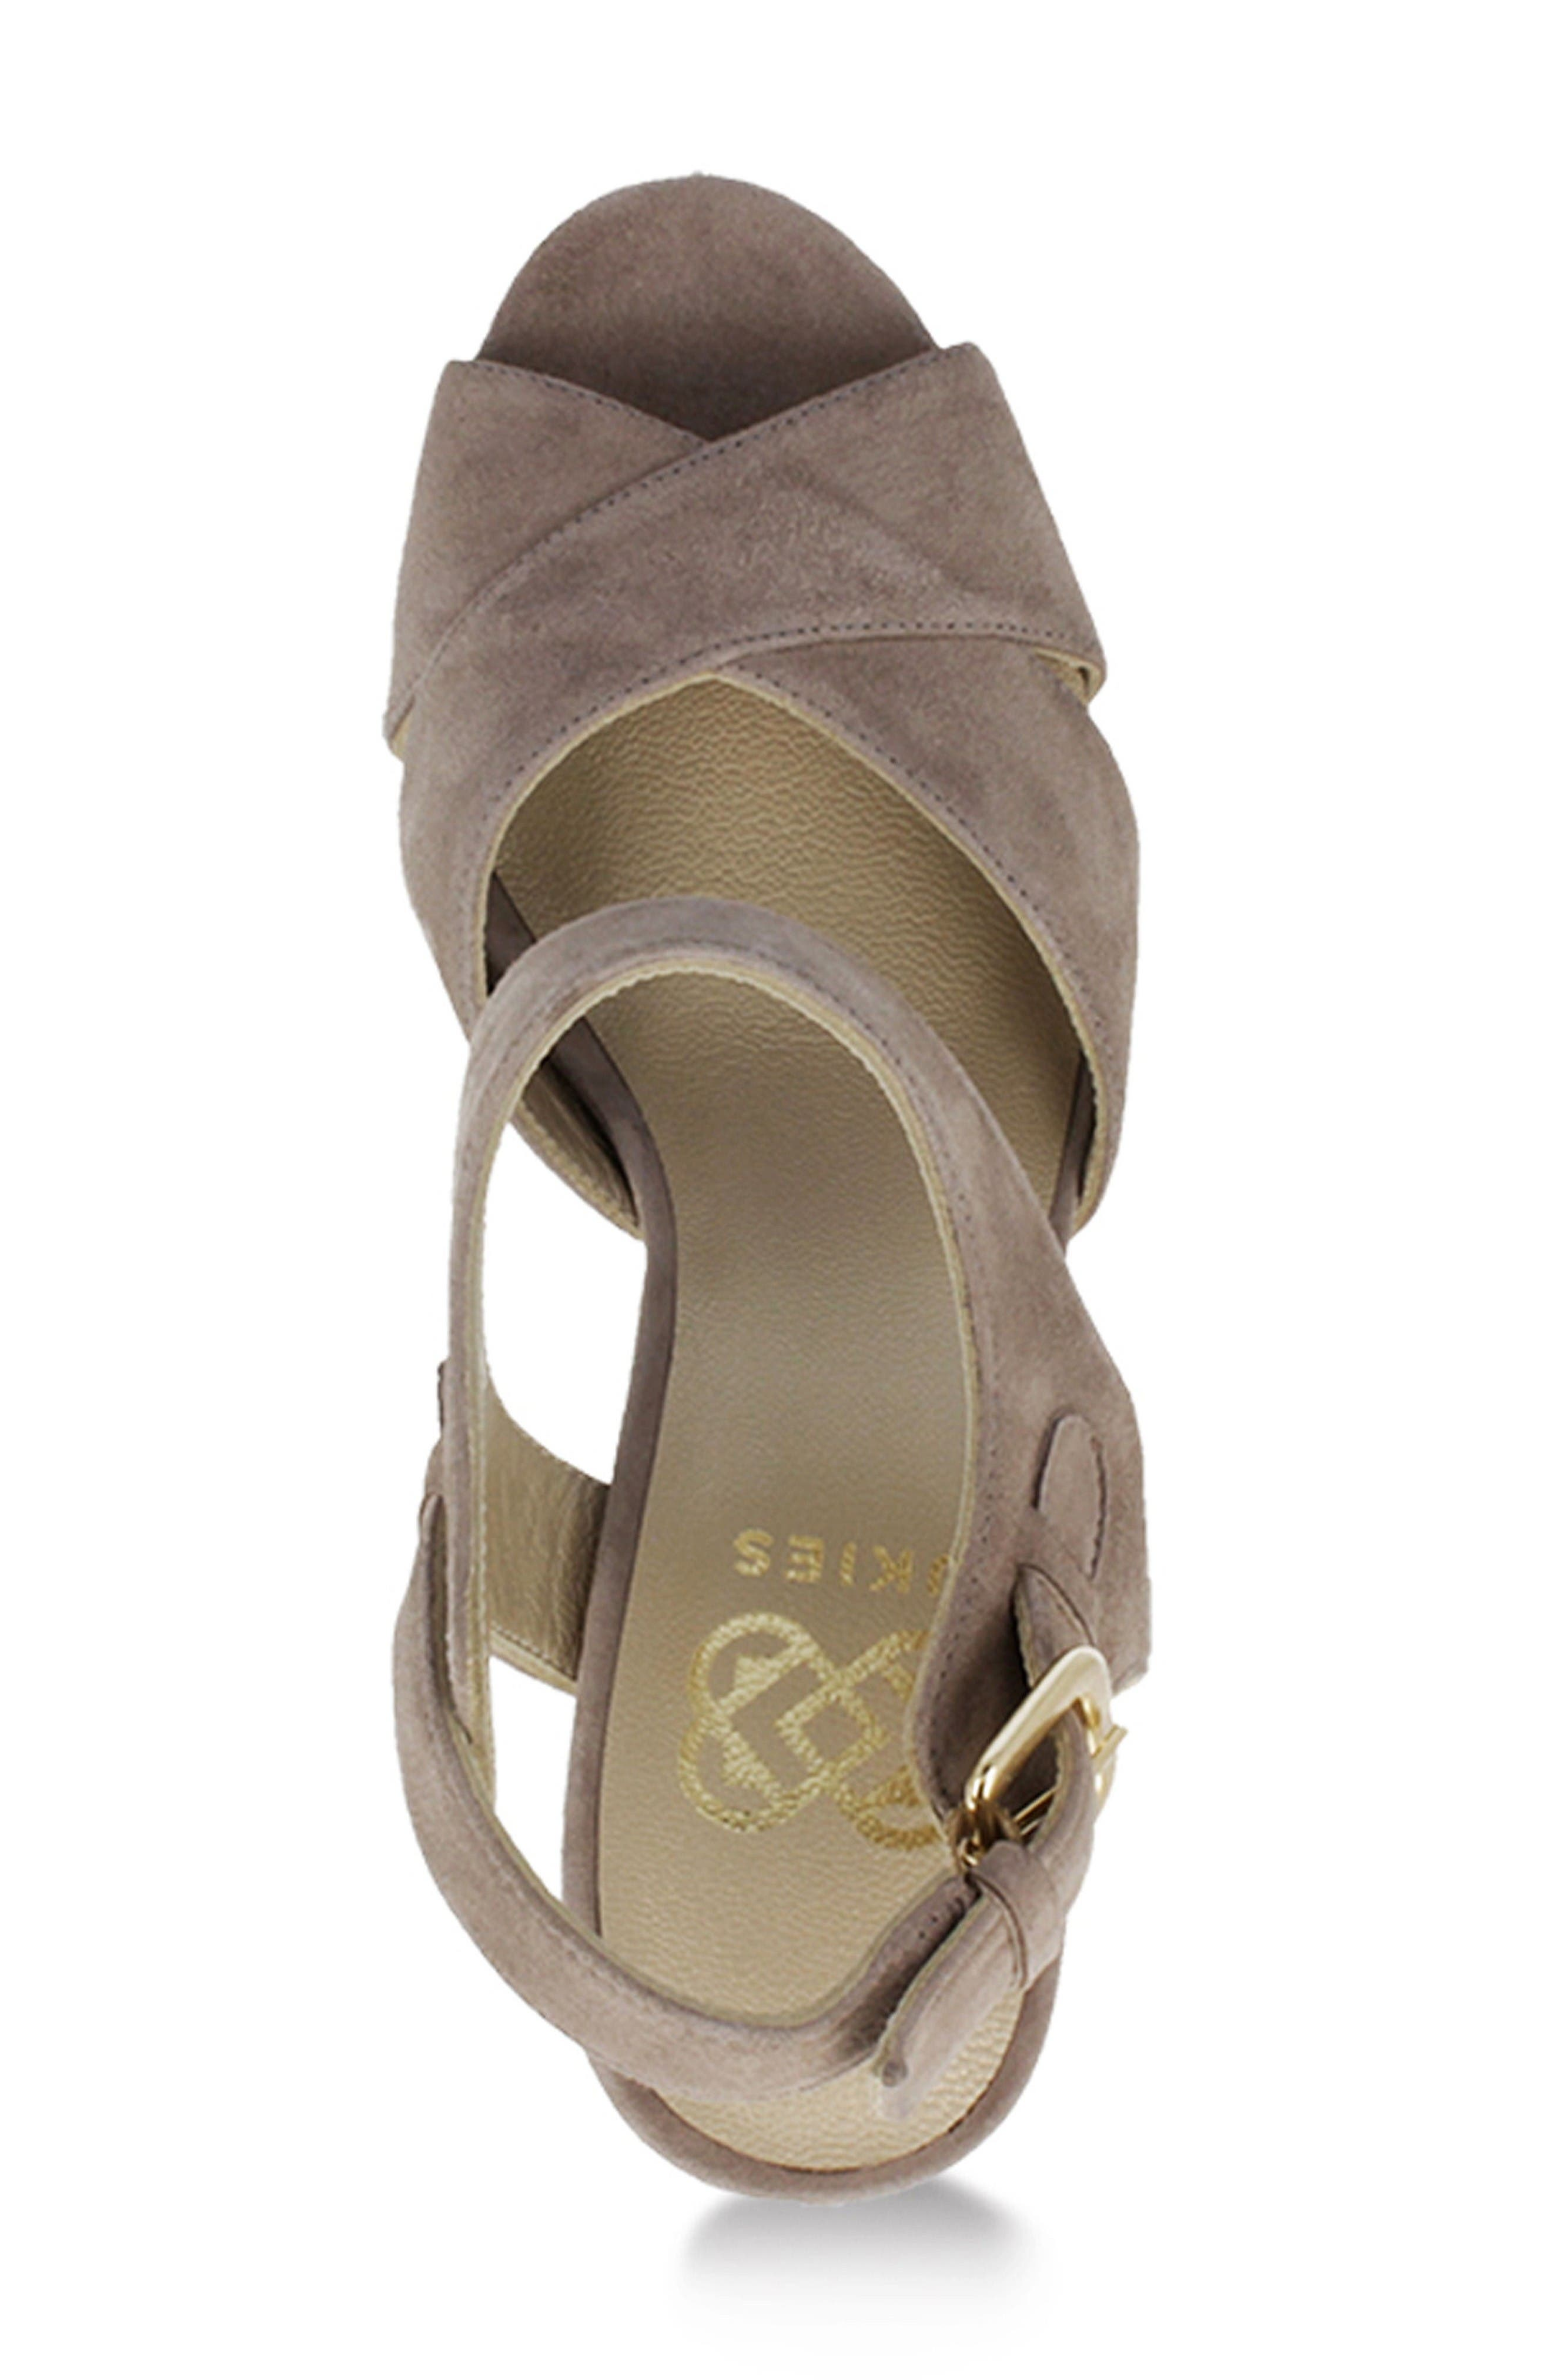 Tango Sandal,                             Alternate thumbnail 3, color,                             Taupe Suede